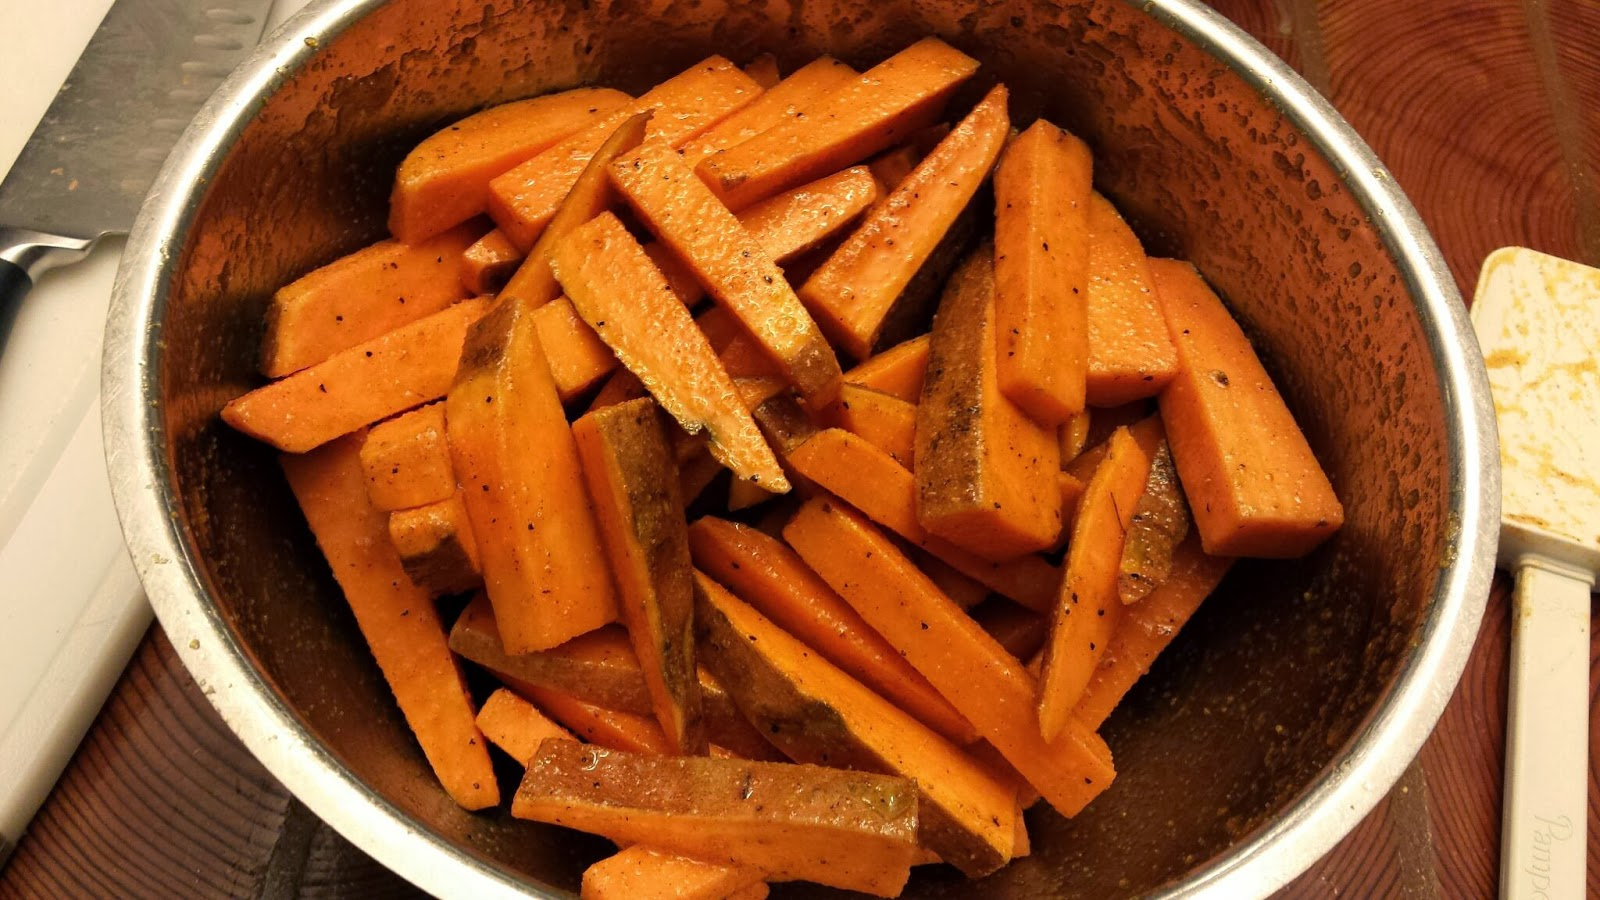 An Onion Exposed Spicy Or Not Oven Baked Sweet Potato Fries